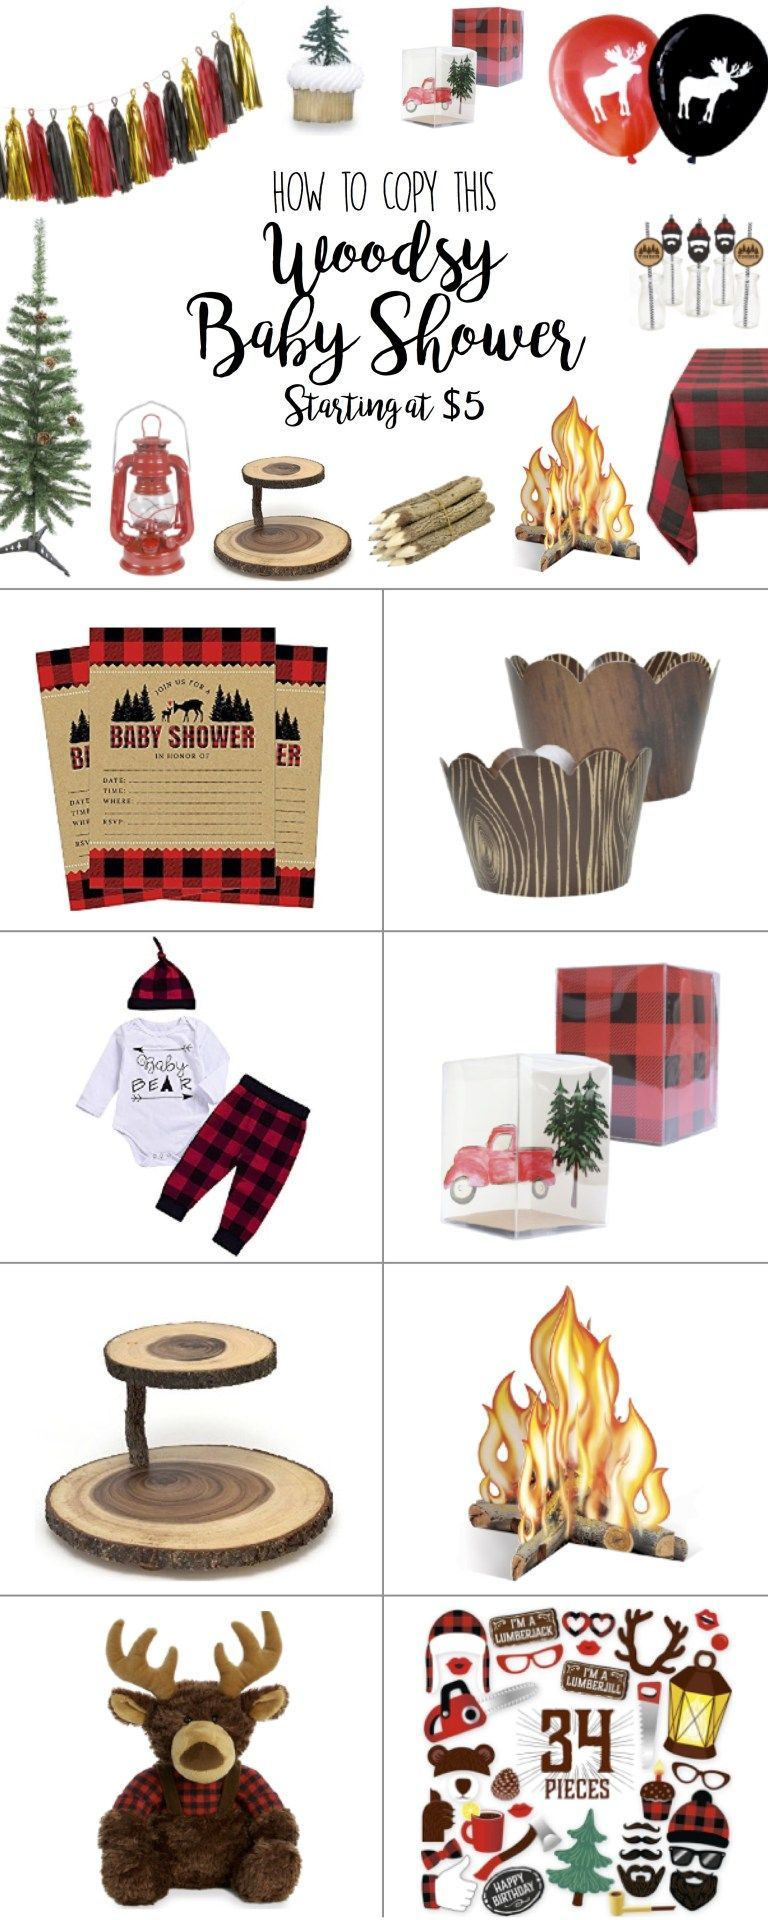 Baby Shower Rustic Baby Shower Boy Decorations and Ideas - Cutest Ideas for Baby Boy Shower, Woodland, Woodsy, Decorations, Deer, Centerpieces, Plaid, Invitations, Favors, Burlap, Cake, DIY, Ideas, Buffalo Plaid Check, theme, favors, gifts, forest lumberjackRustic Baby Shower Boy Decorations and Ideas -...